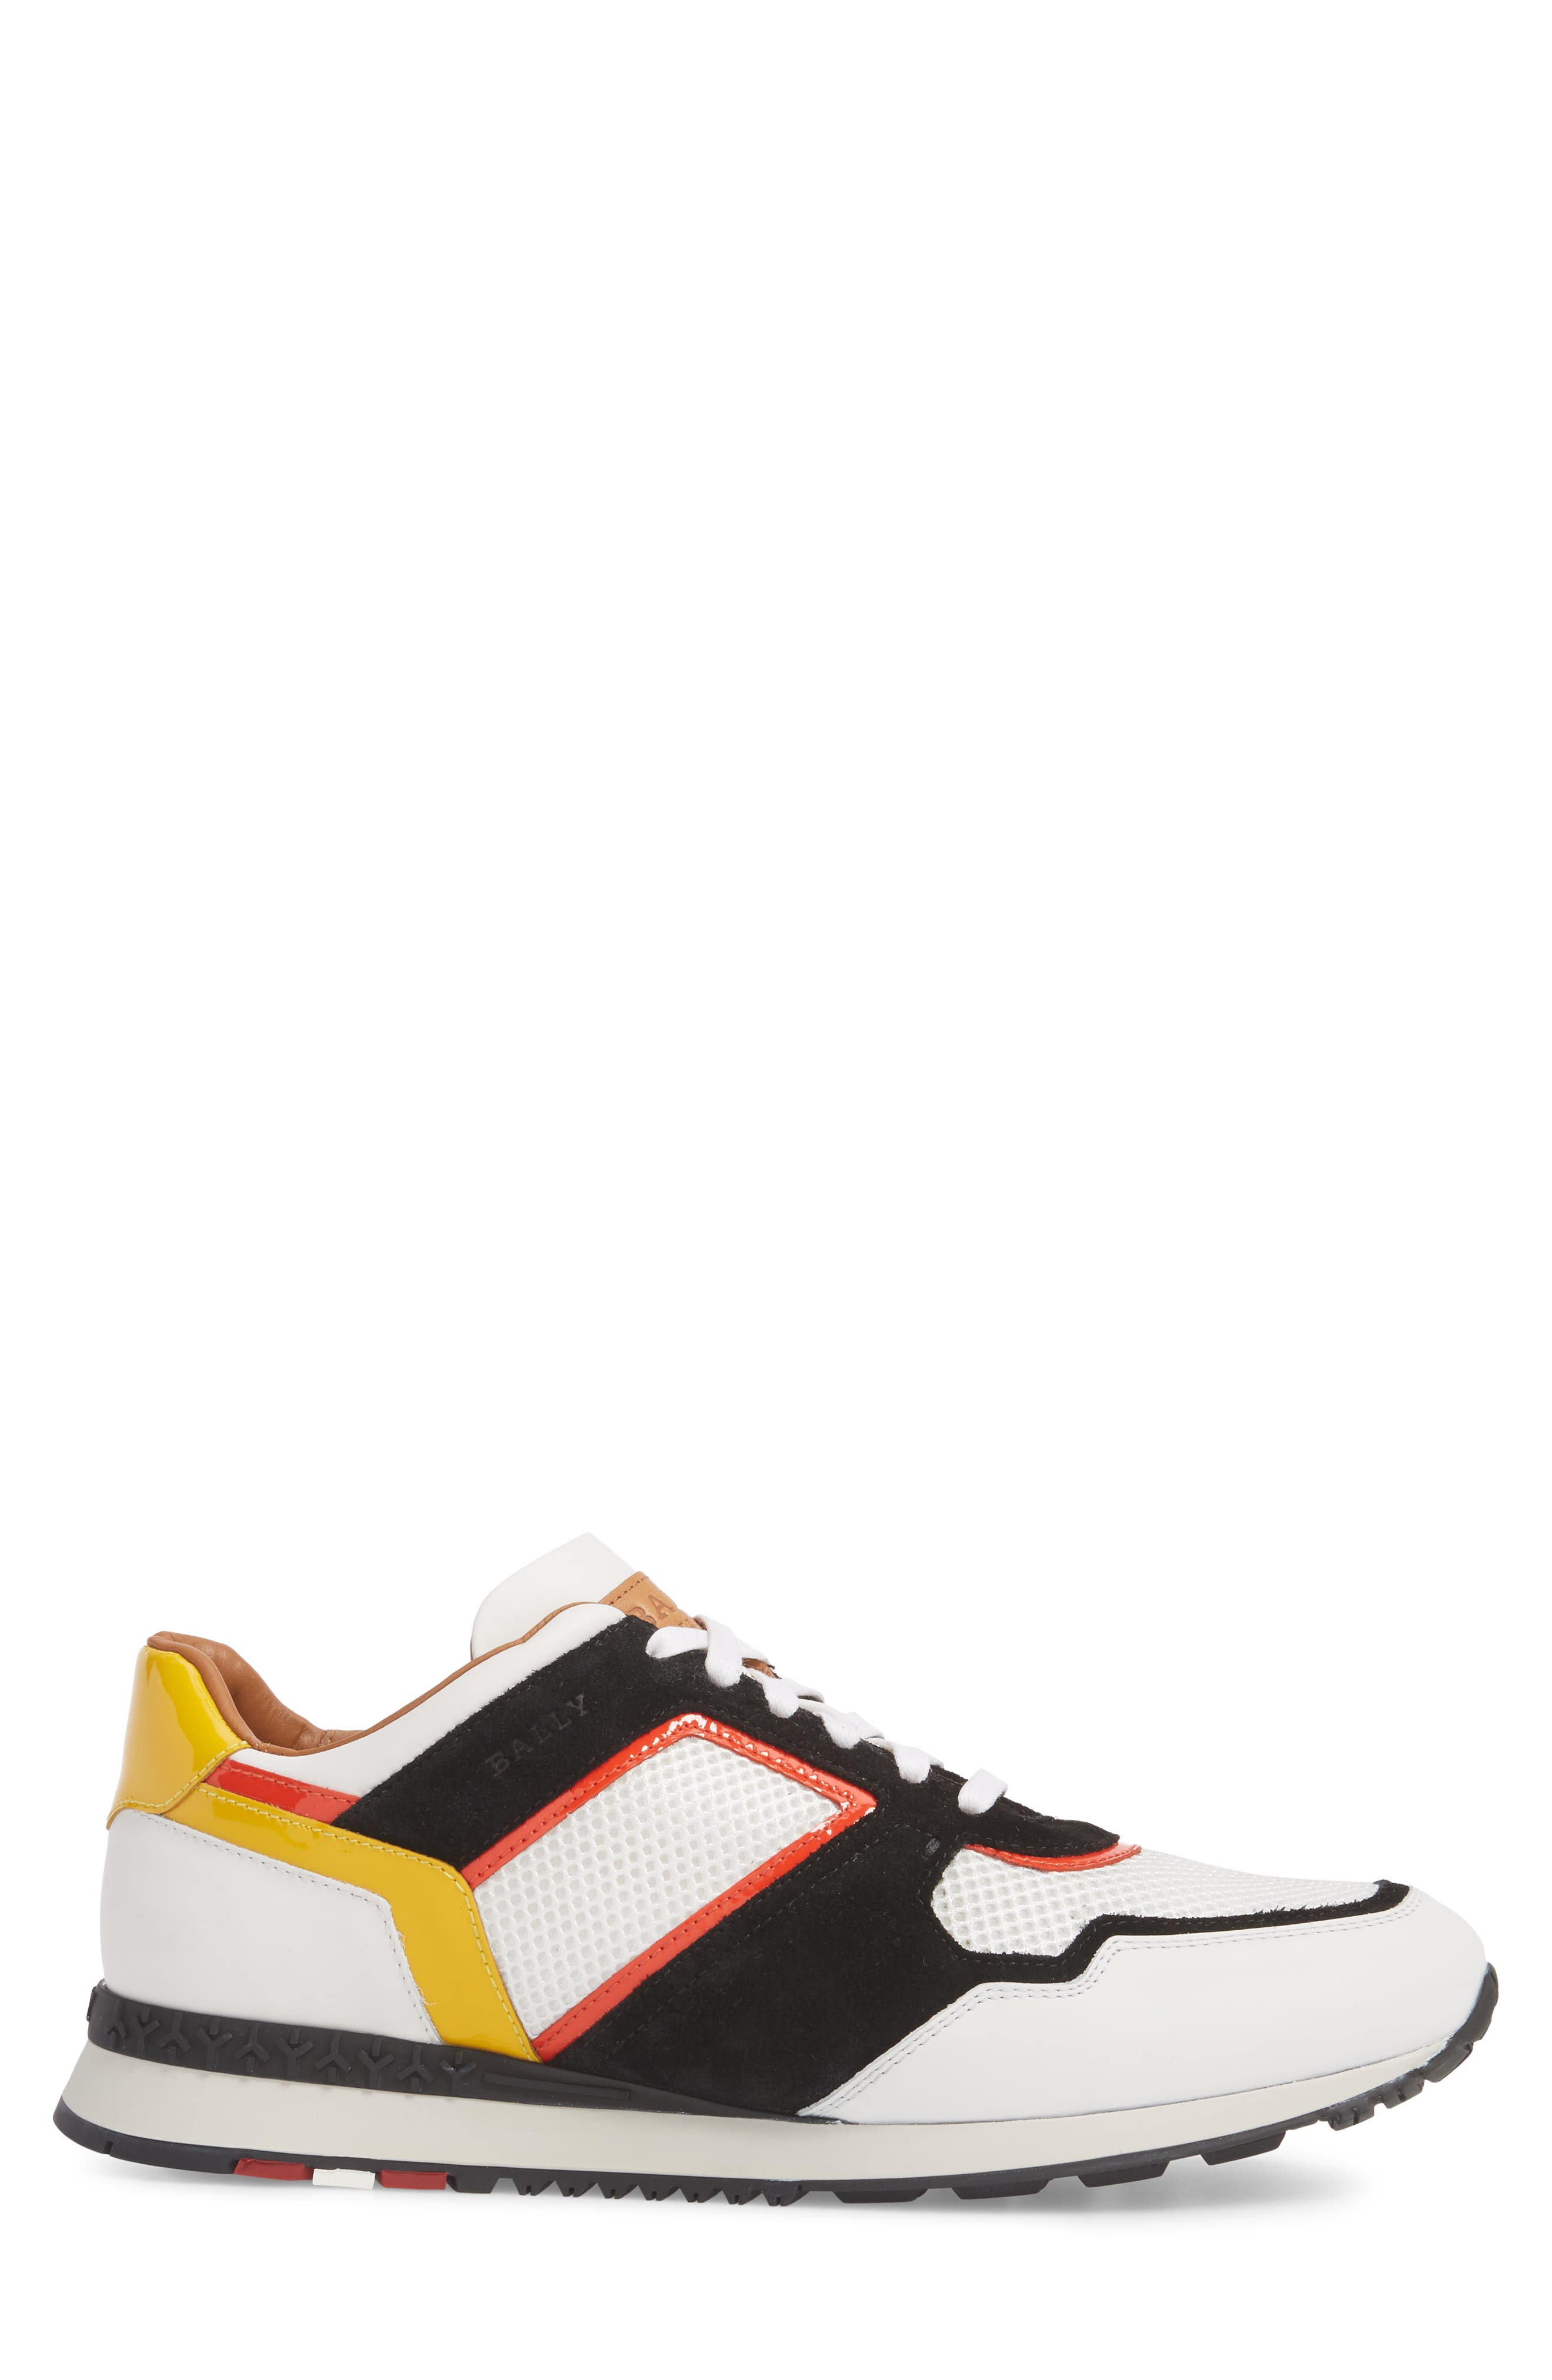 Astreo Low Top Sneaker,                             Alternate thumbnail 3, color,                             109